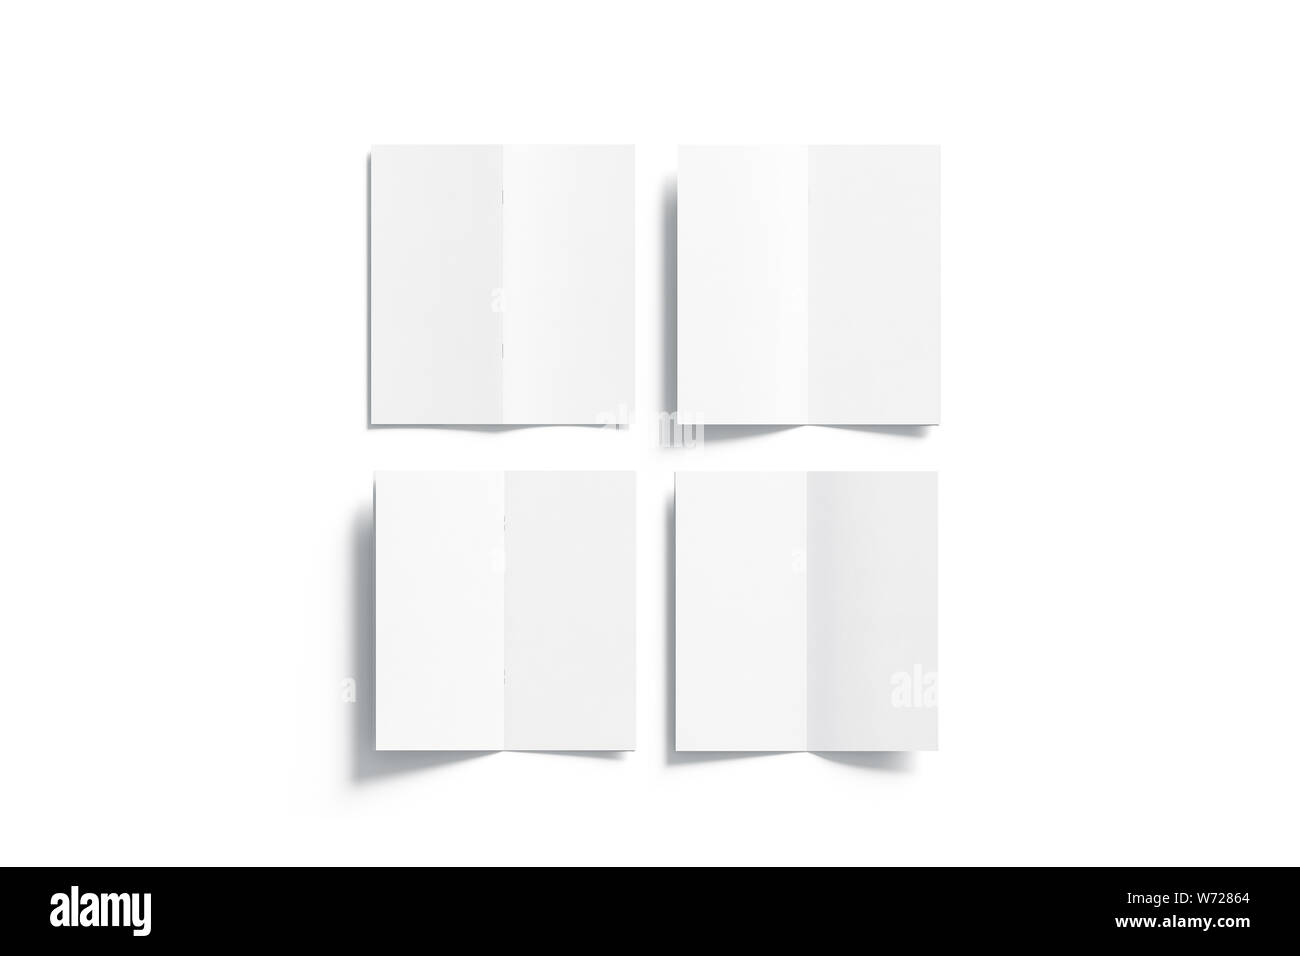 Blank white multi-page booklet mock up, opened top view, front, back, inside side, 3d rendering. Plain twofold brochures mockups set isolated. Folded Stock Photo